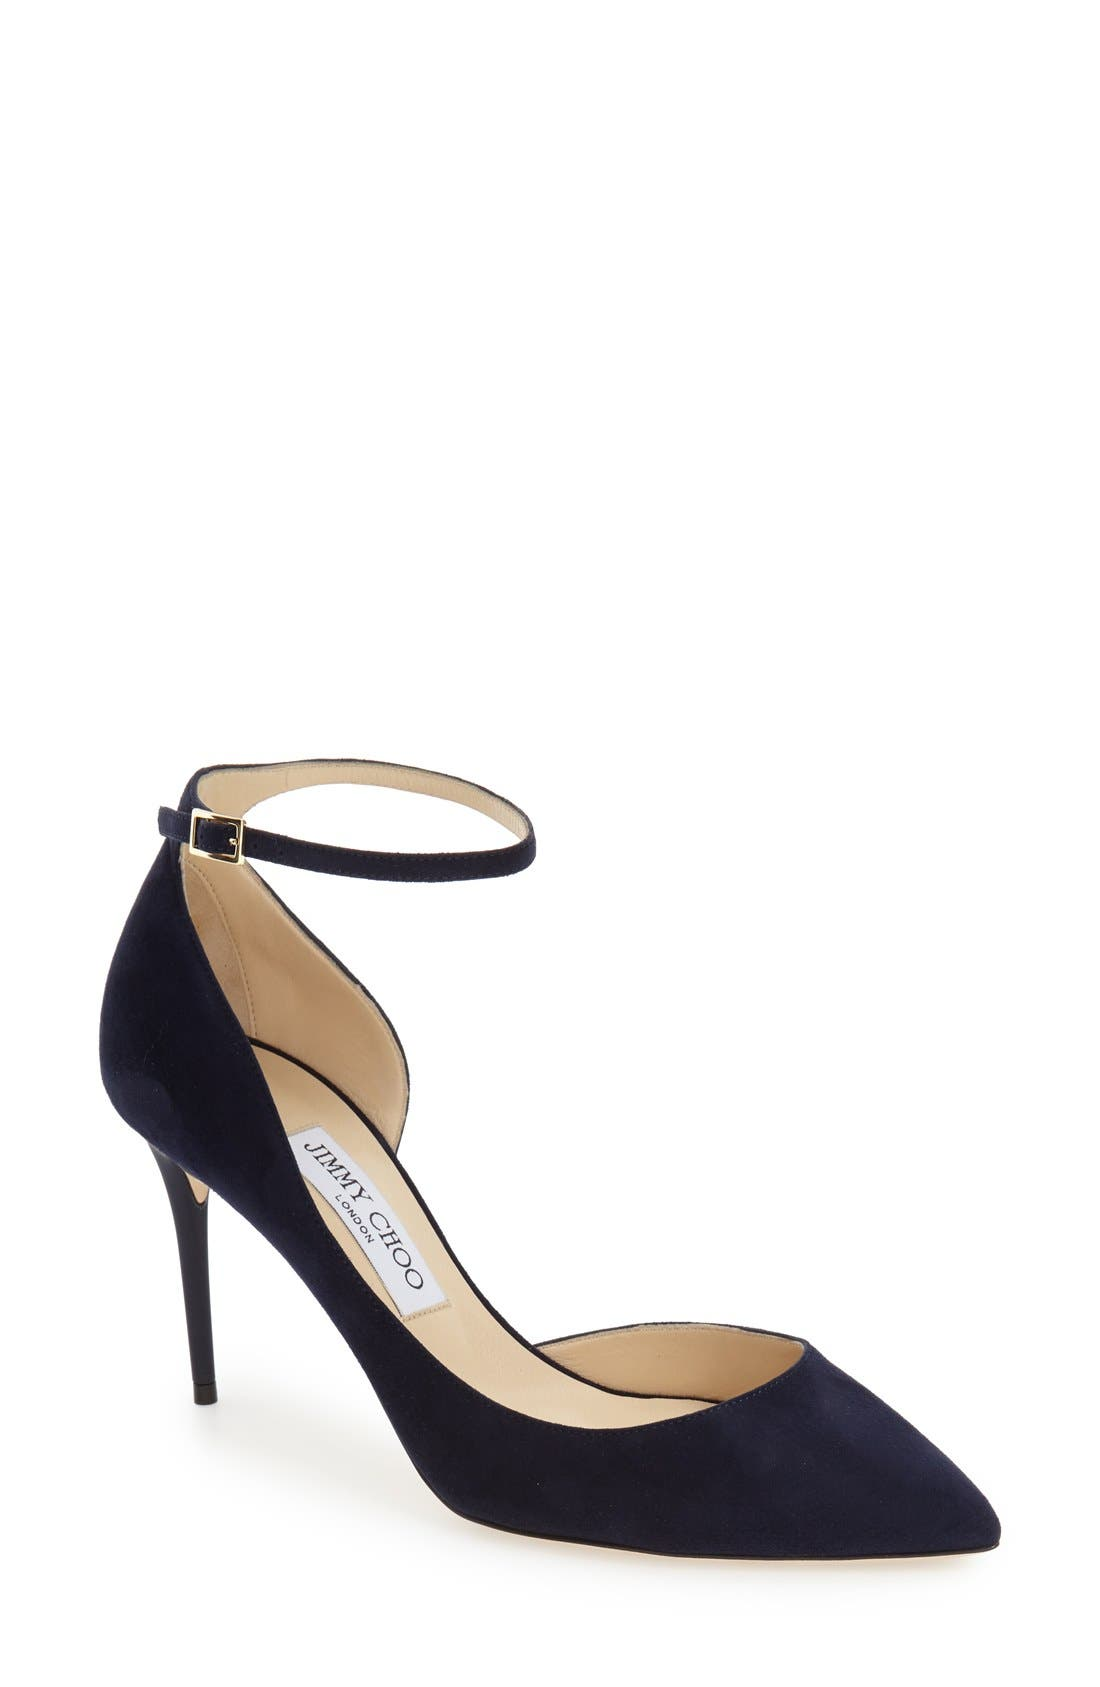 'Lucy' Half d'Orsay Pointy Toe Pump,                         Main,                         color,